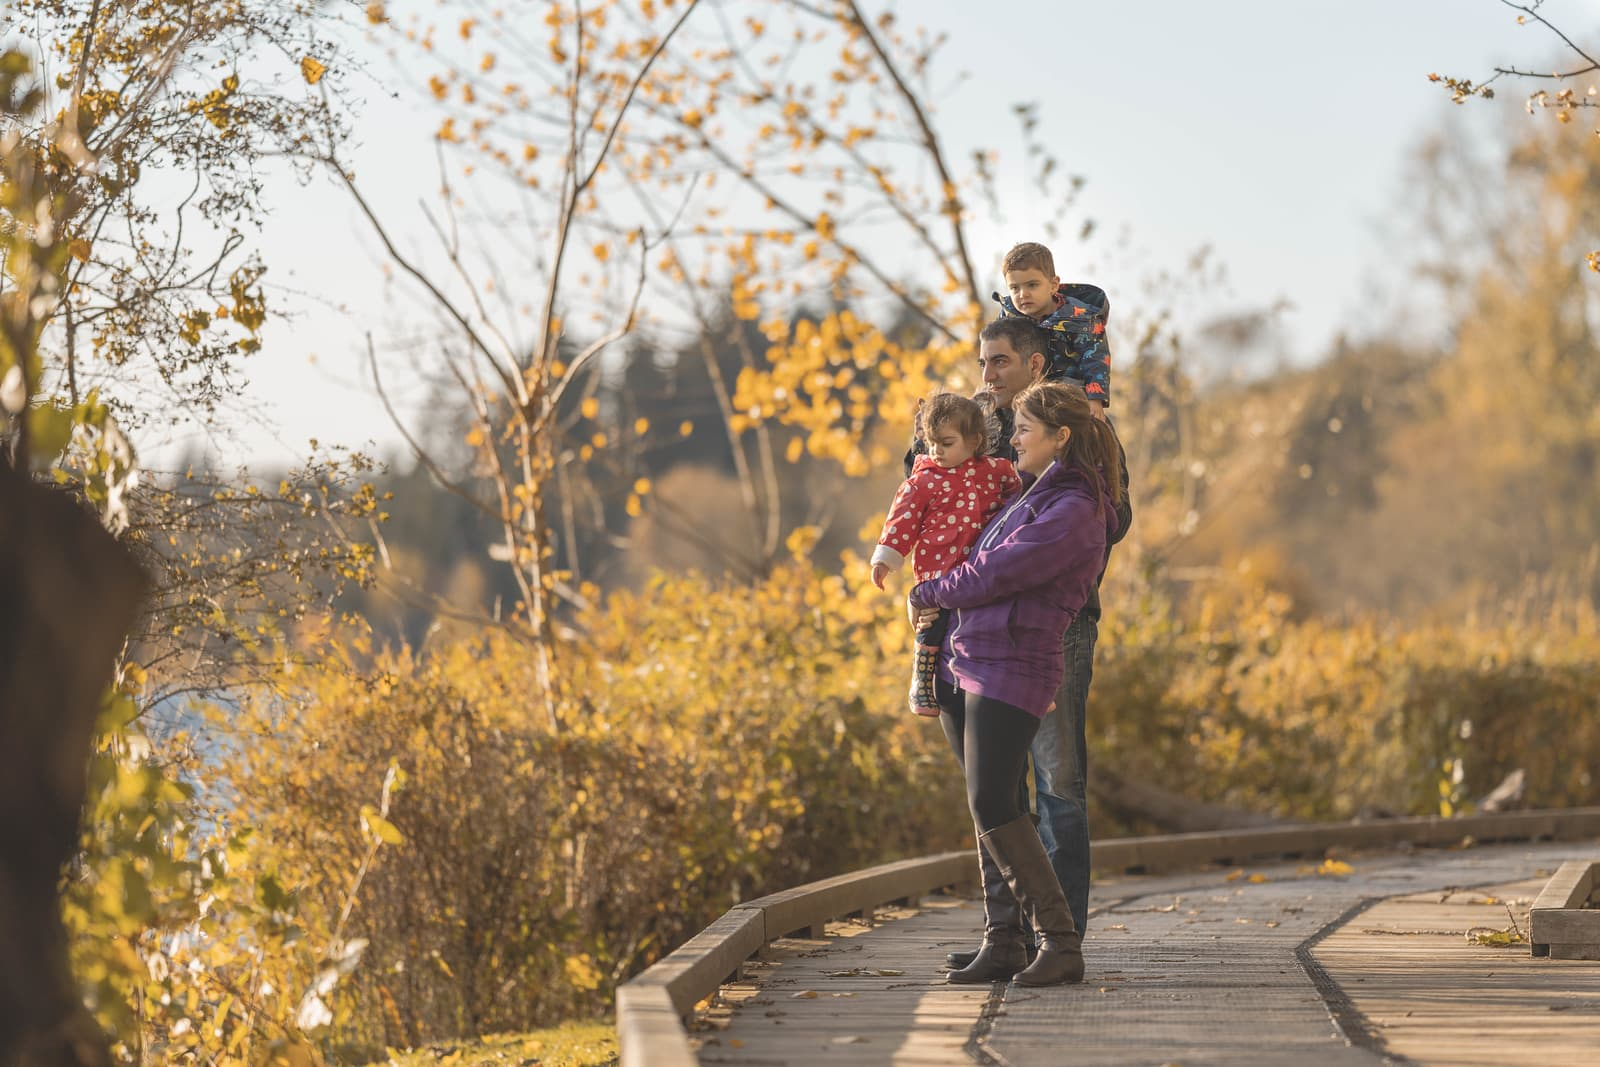 Fall photo session with young family